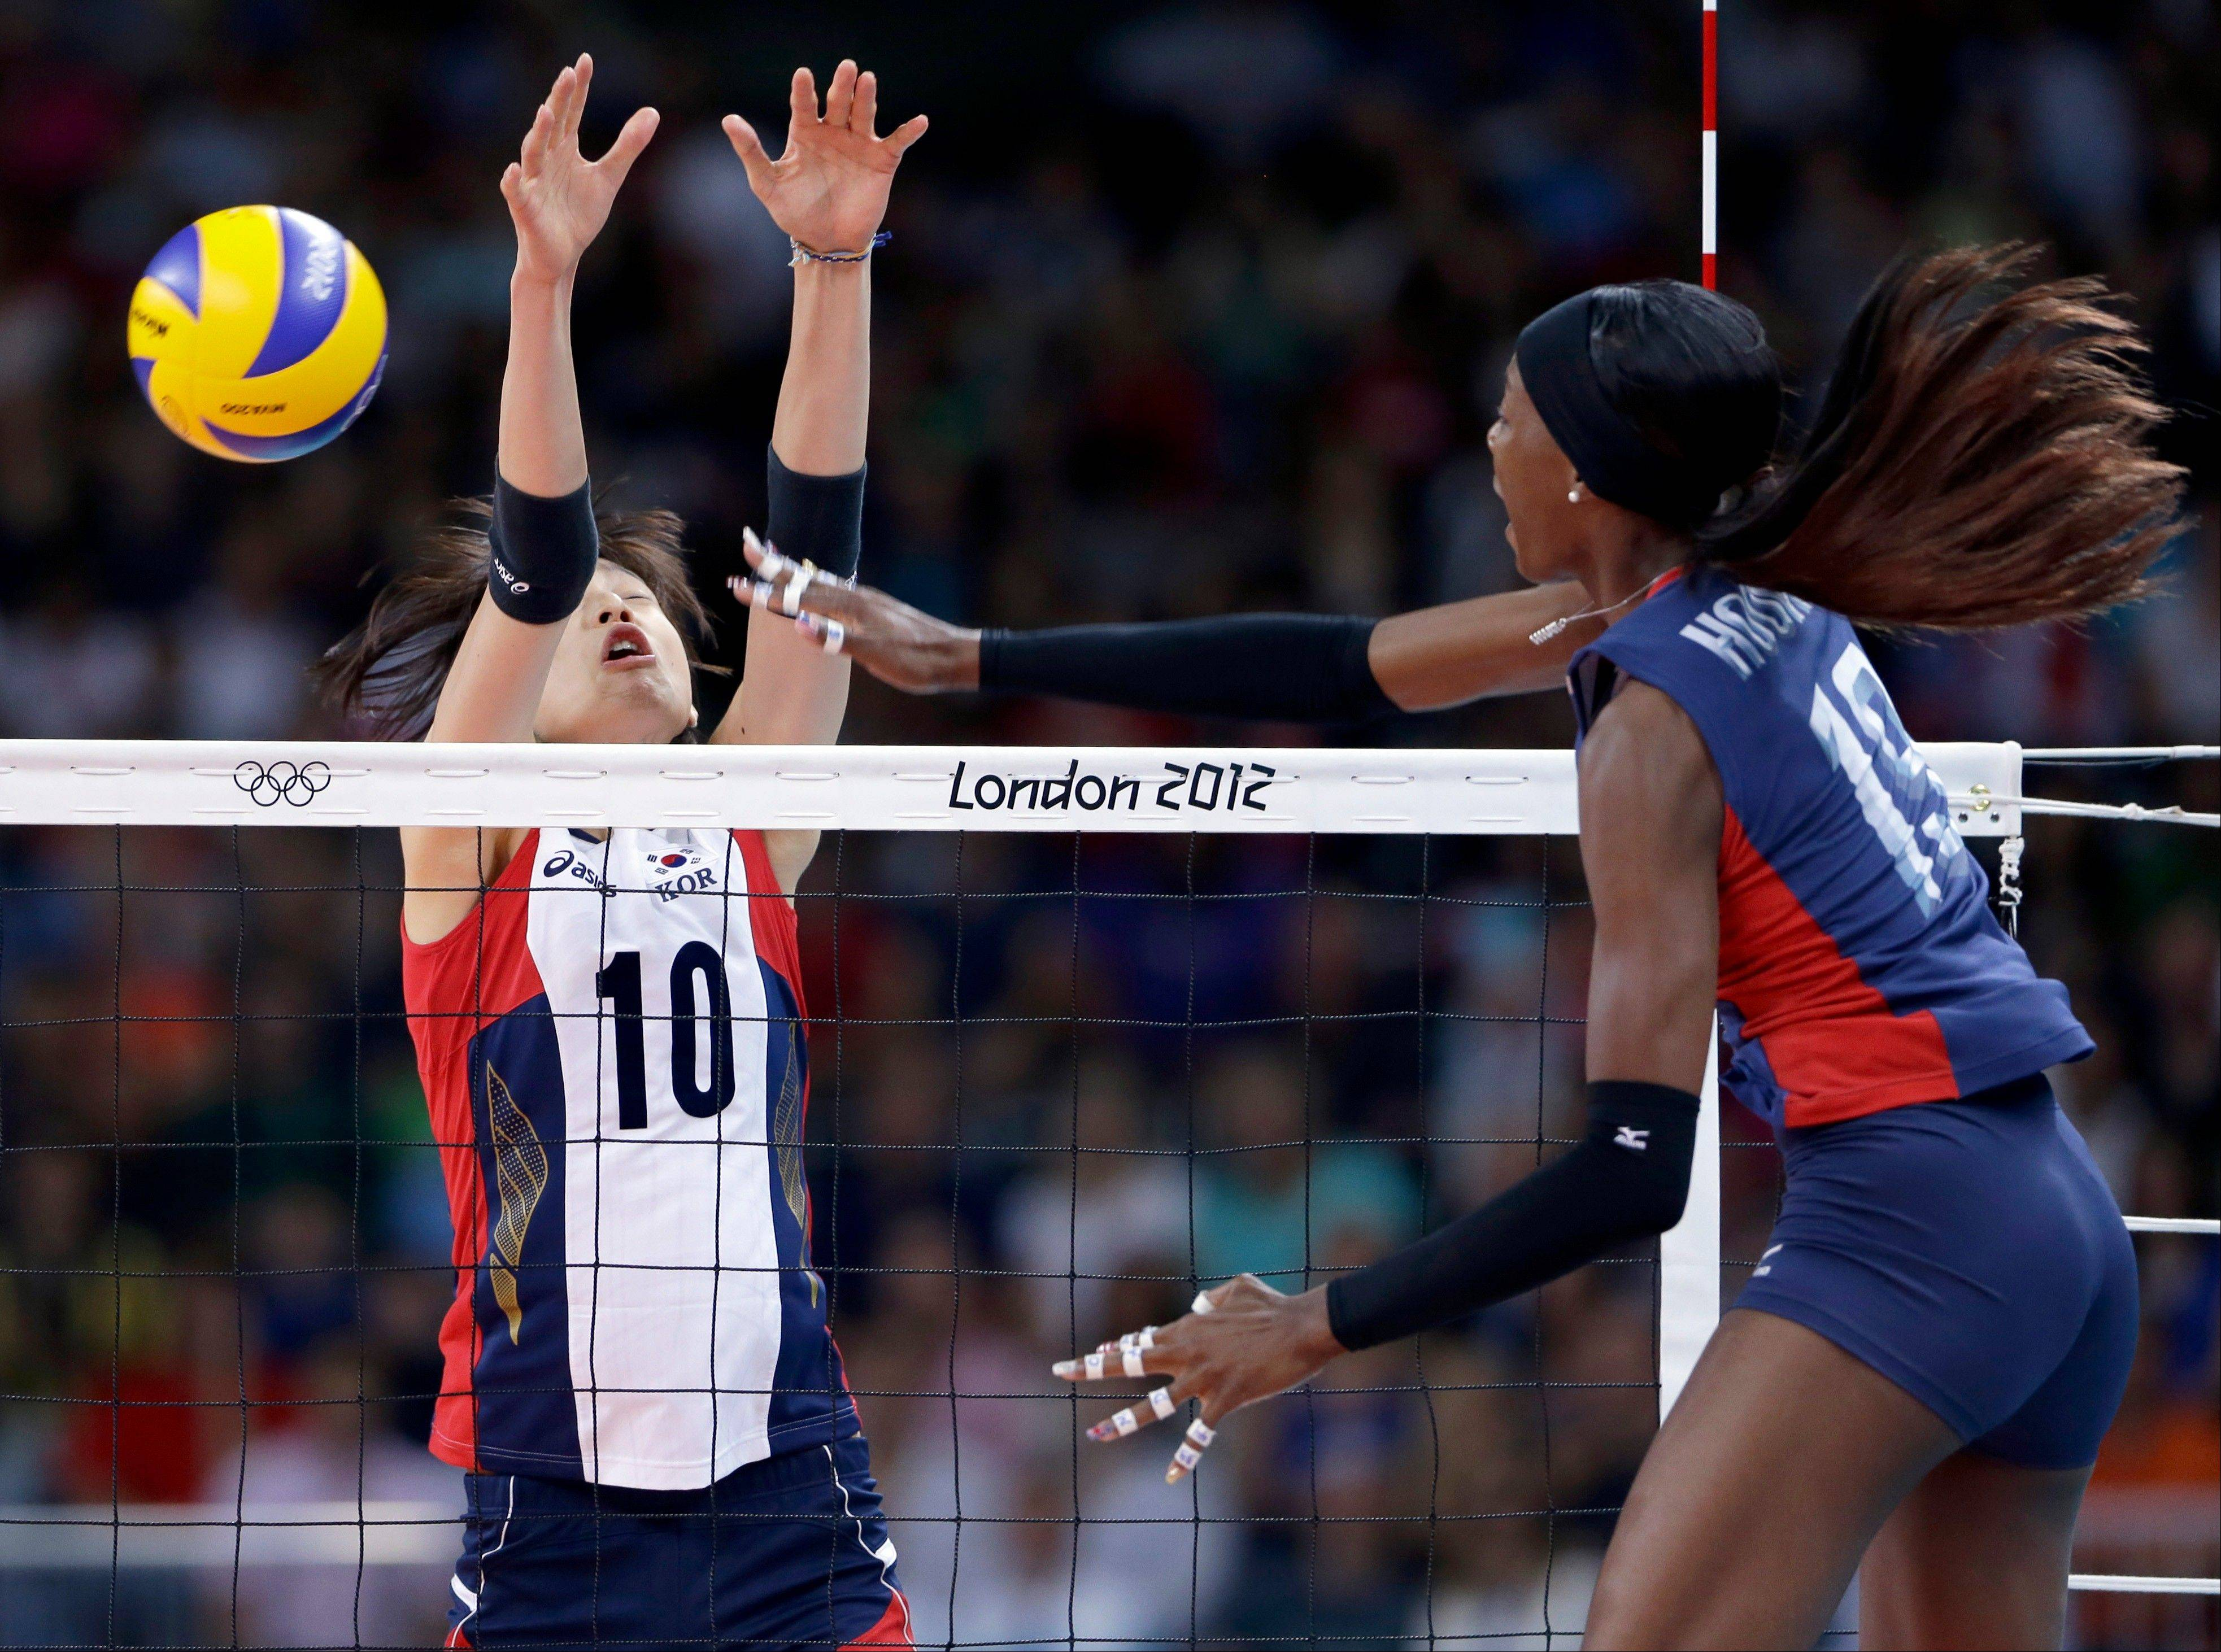 U.S. women's volleyball team opens with a win